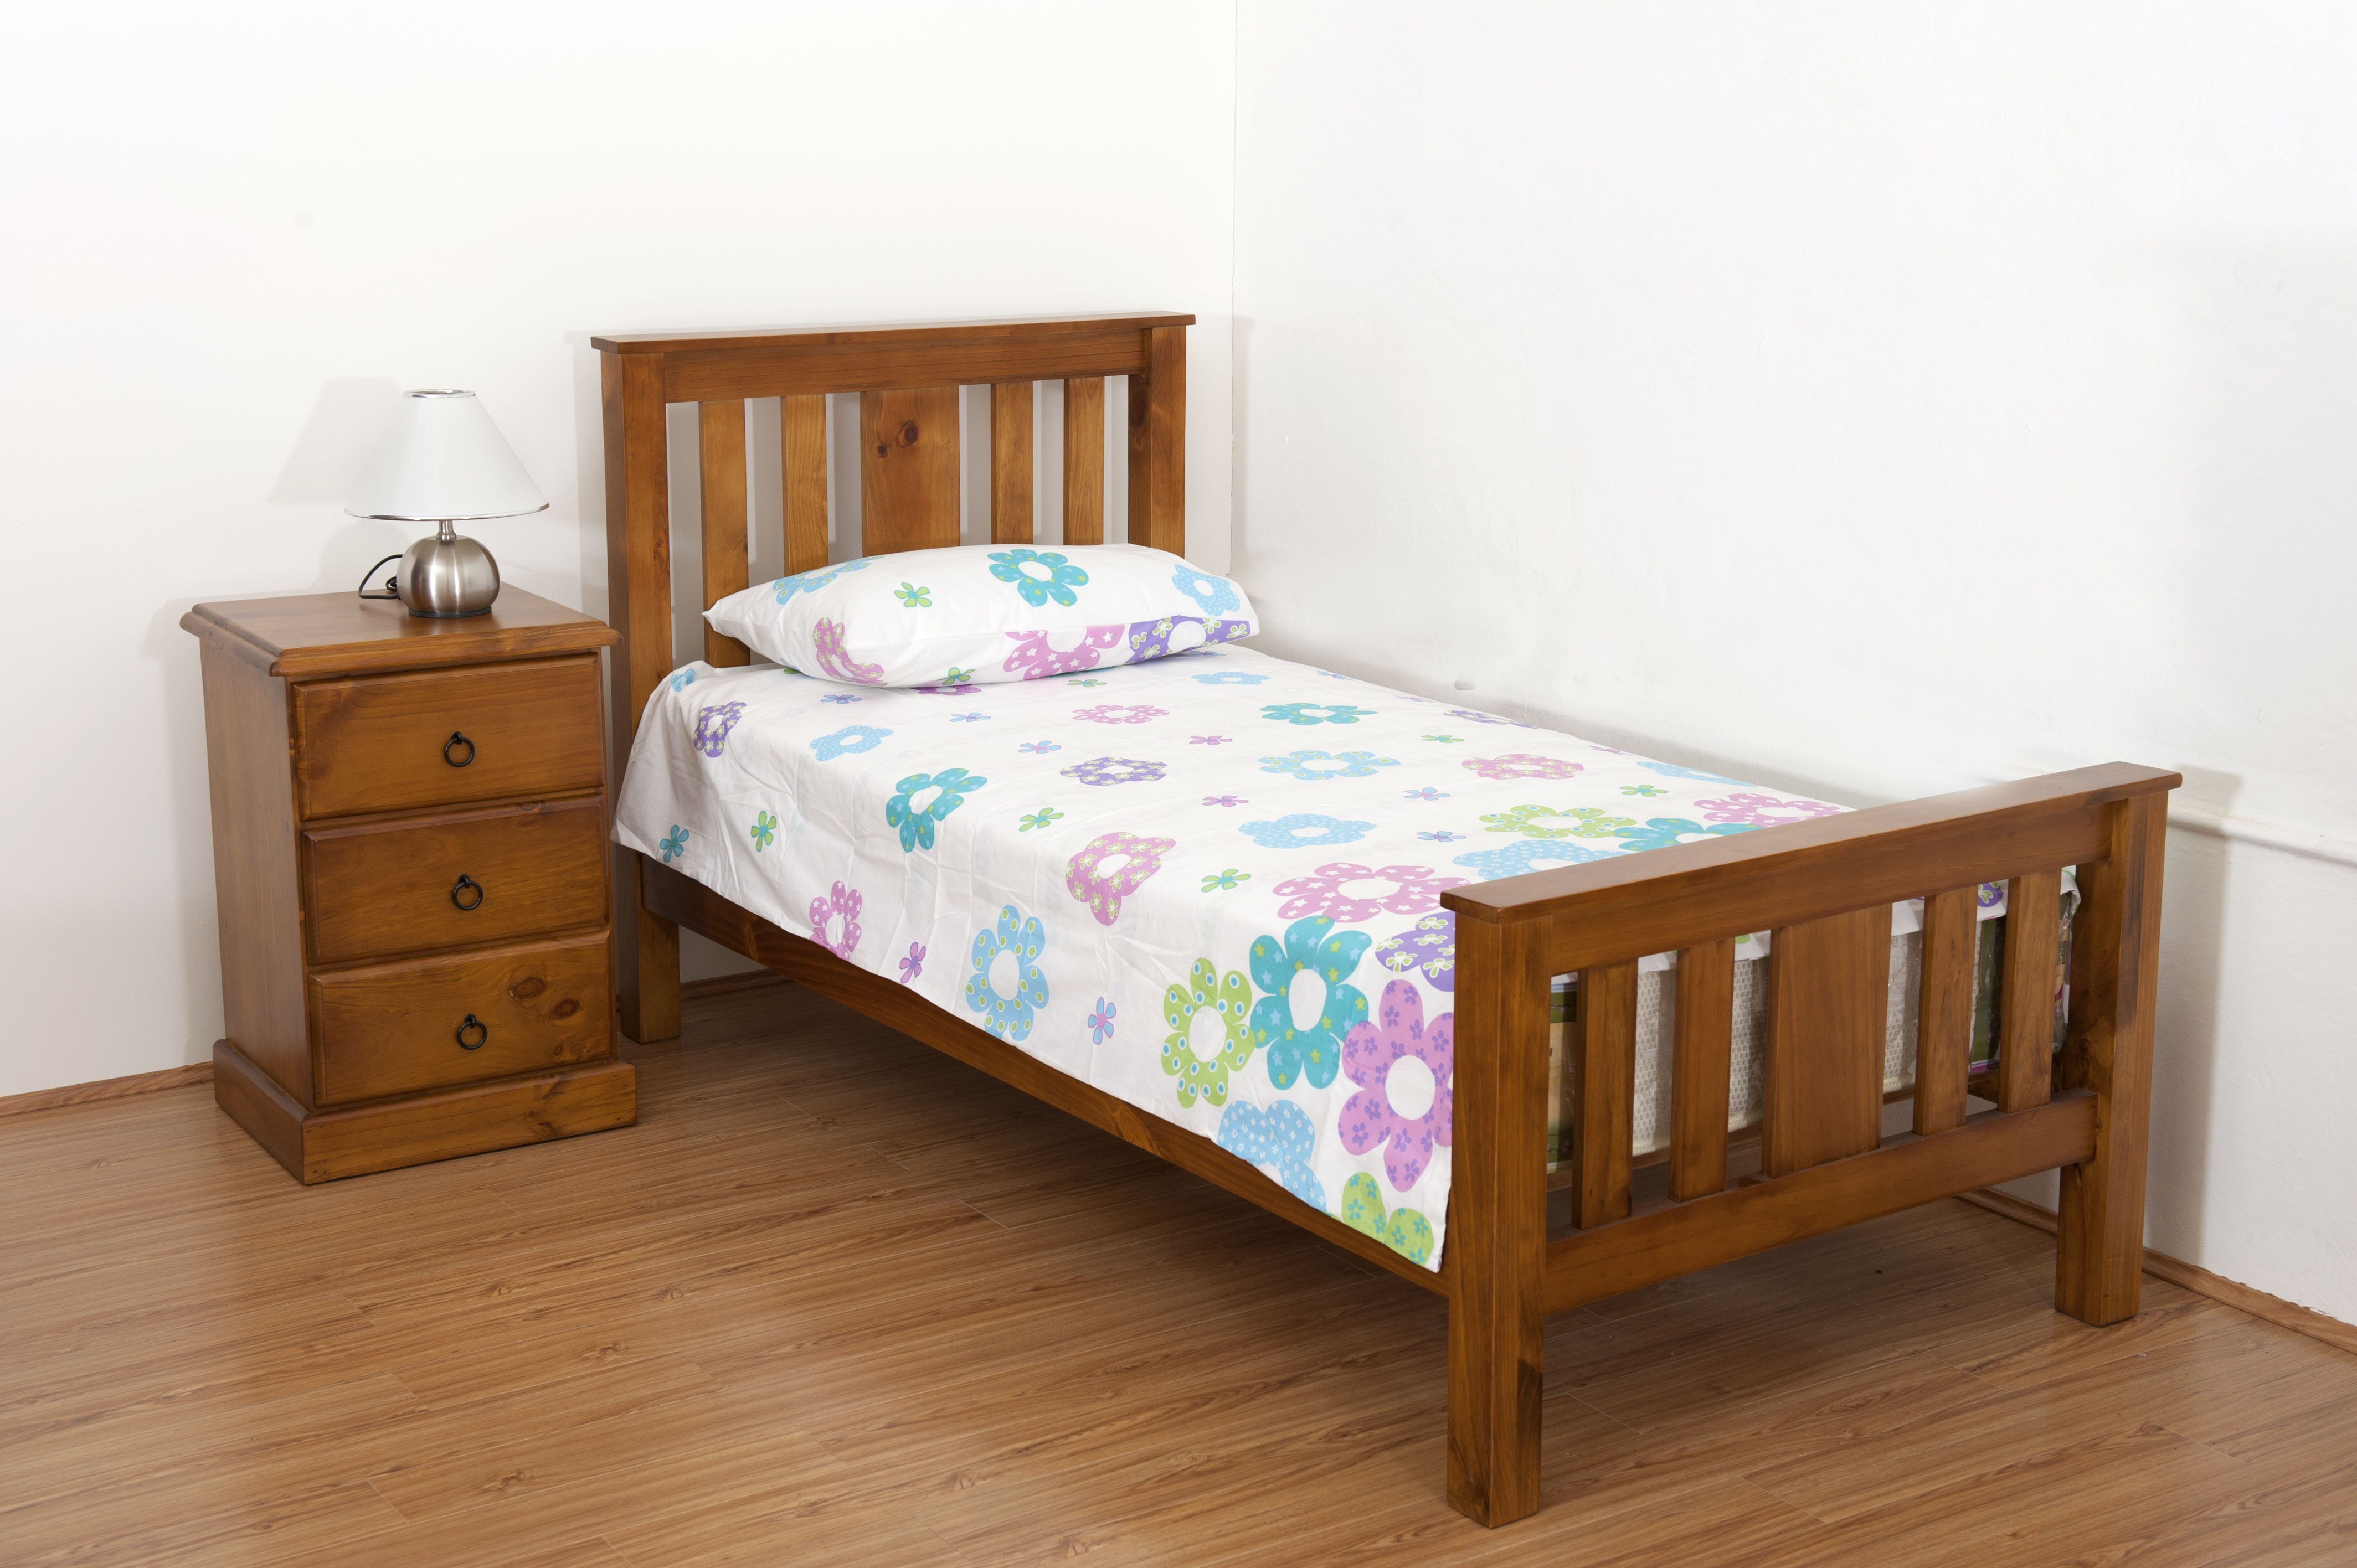 Solid Wood Furniture Carrington Kingsingle Bed (Solid Timber). Full resolution‎  photo, nominally Width 4256 Height 2832 pixels, photo with #70411E.